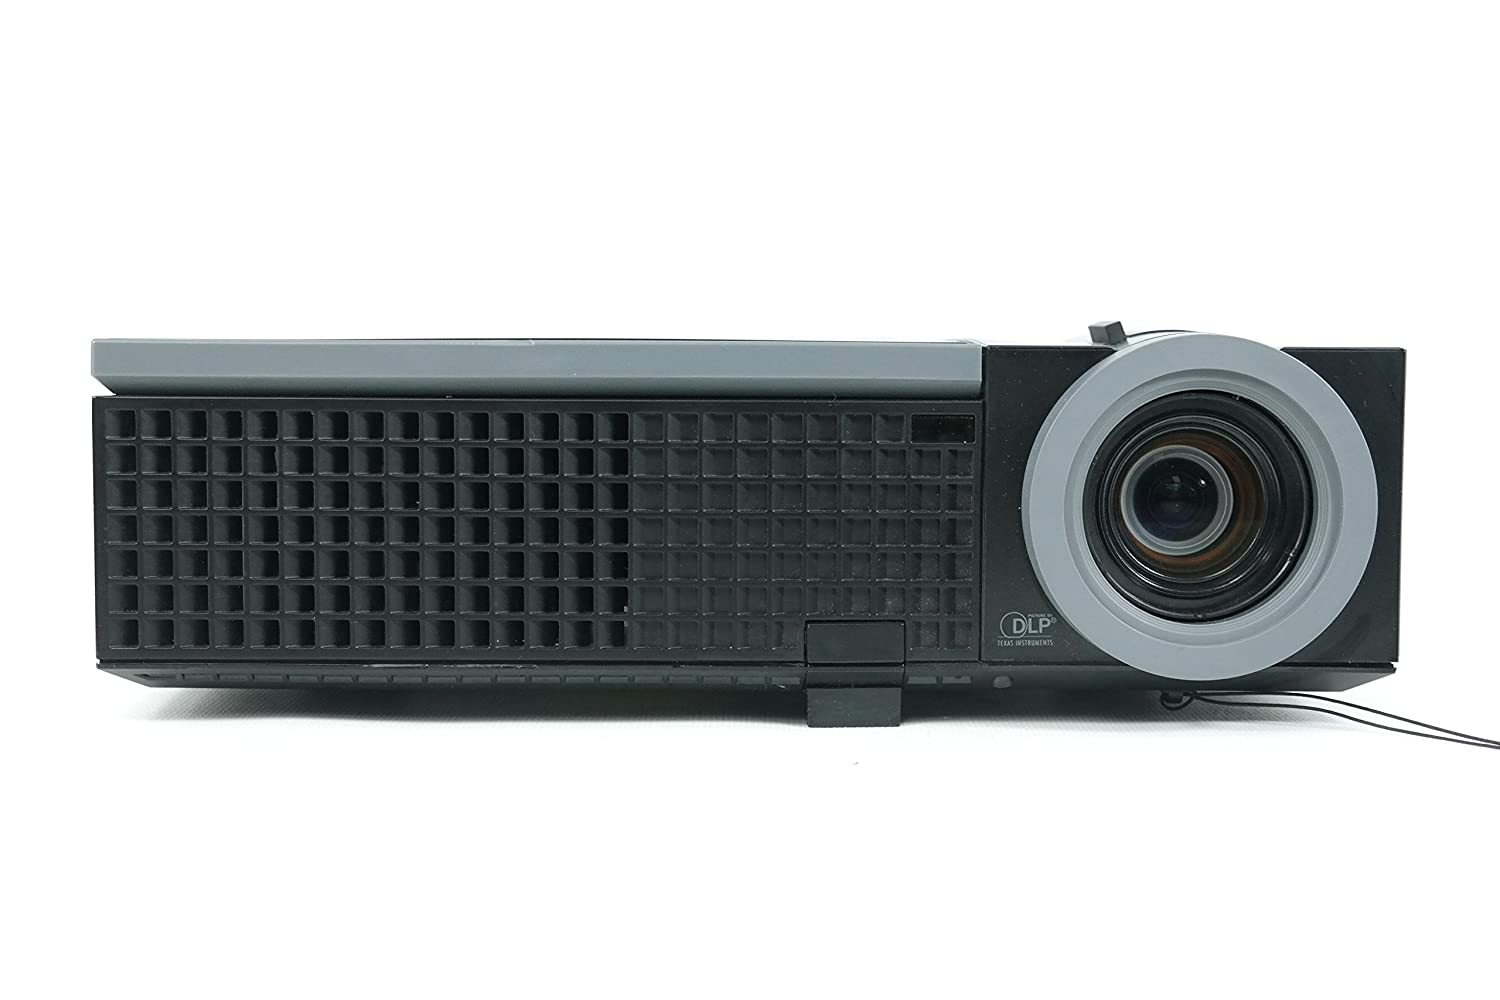 DELL 1510x HIGH RESOLUTION PROJECTOR w/NETWORK CONNECTION by Dell